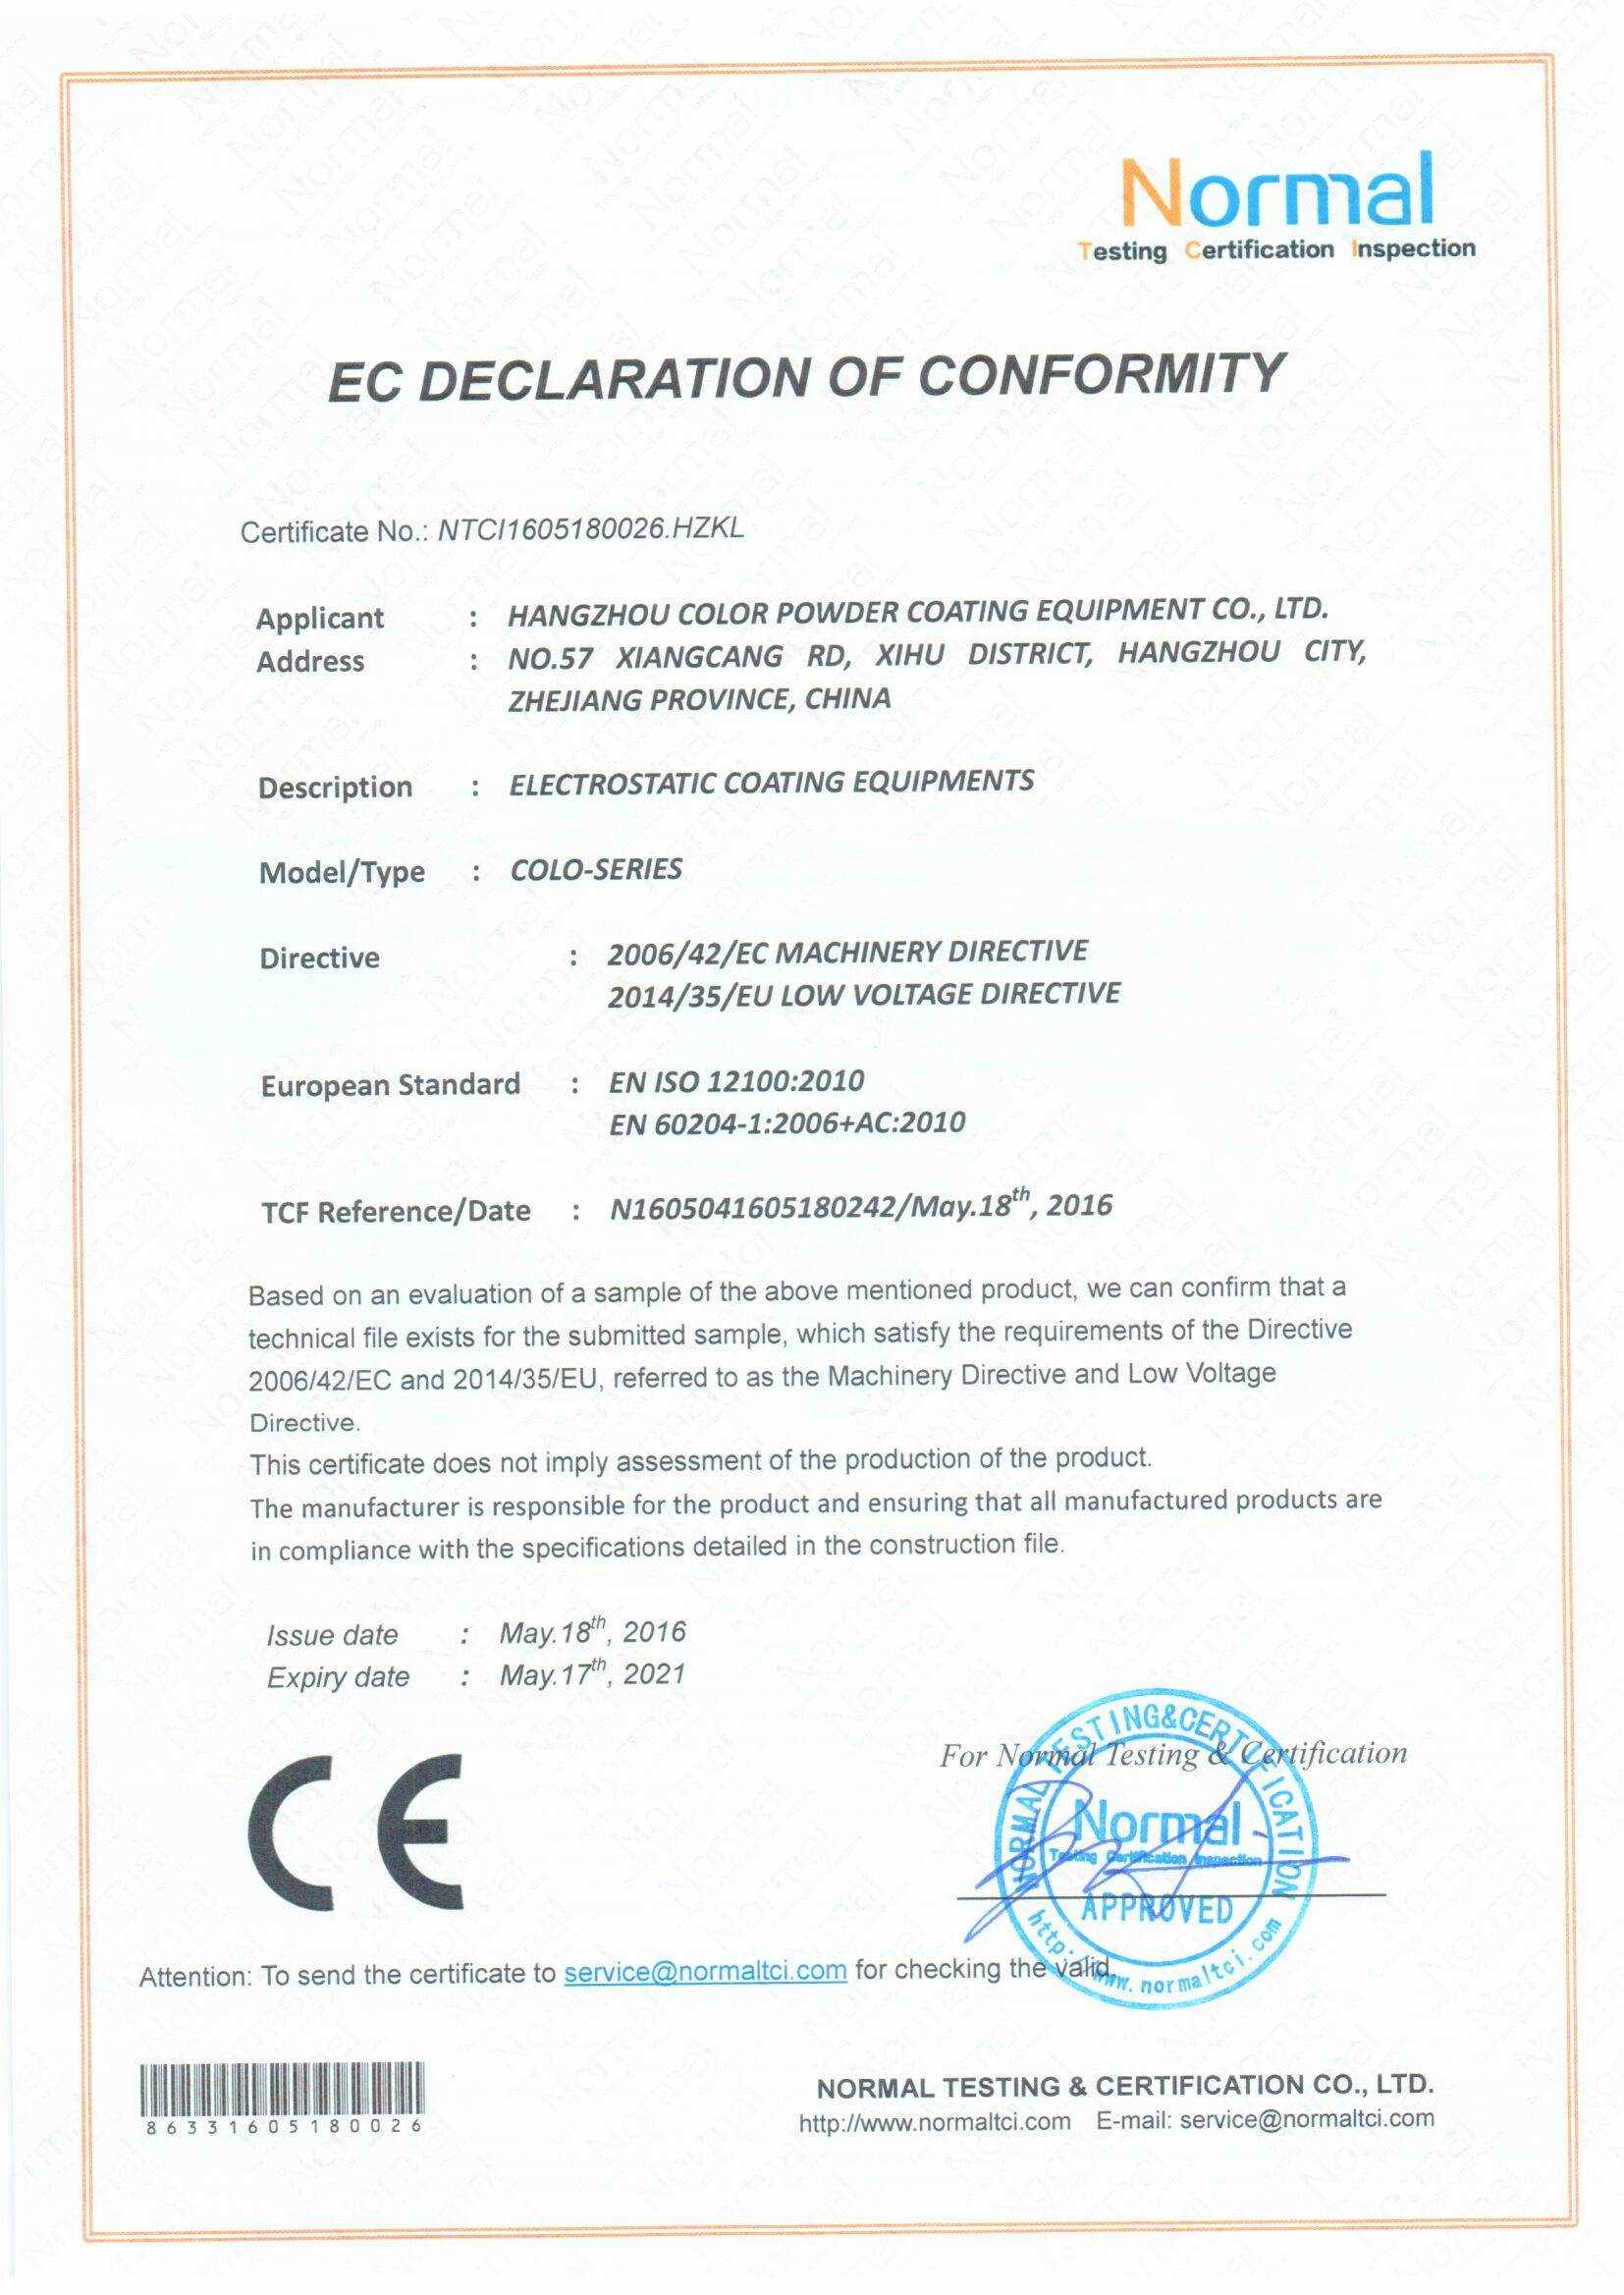 New CE certificat for Colo powder coating equipment